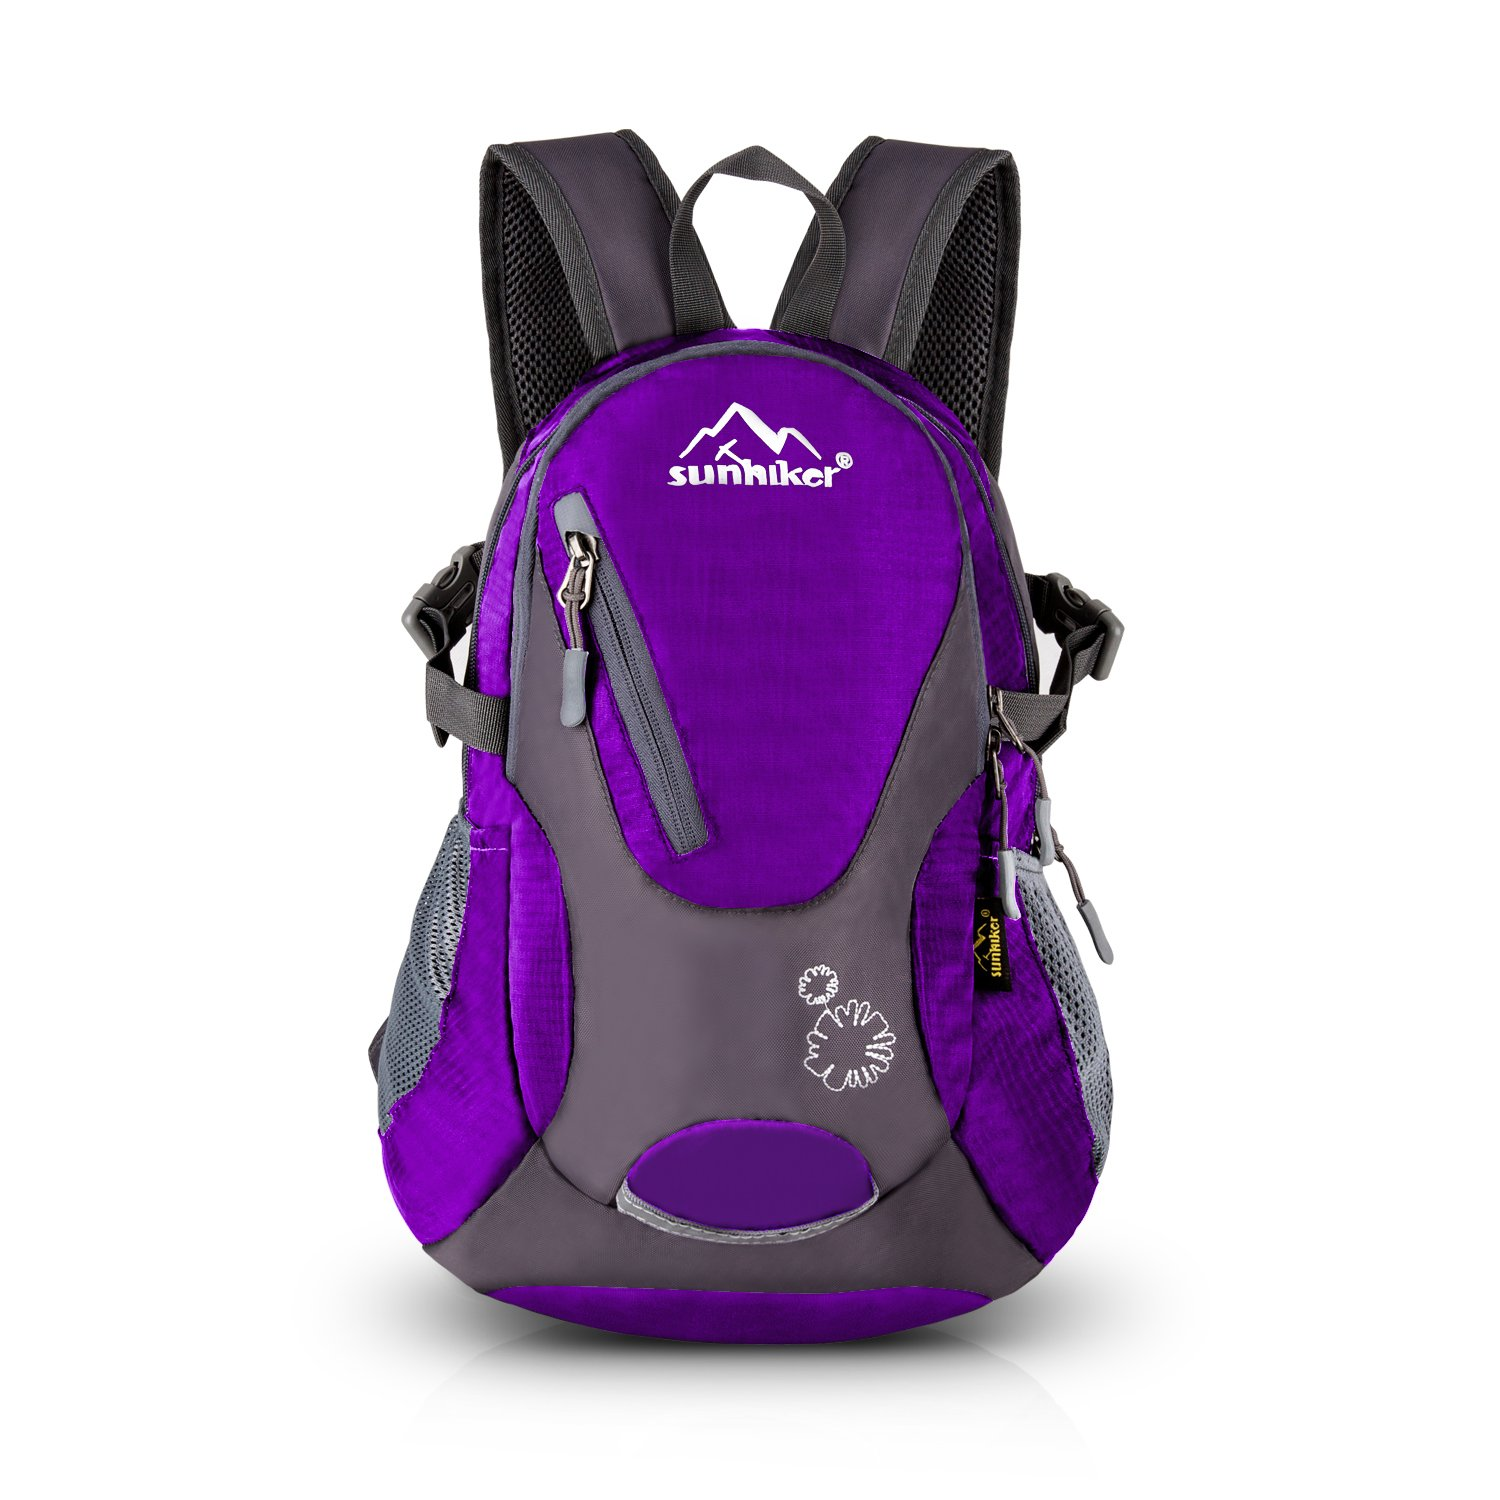 972bbd55ed28 Details about Sunhiker Cycling Hiking Backpack Water Resistant Travel  Biking Lightweight